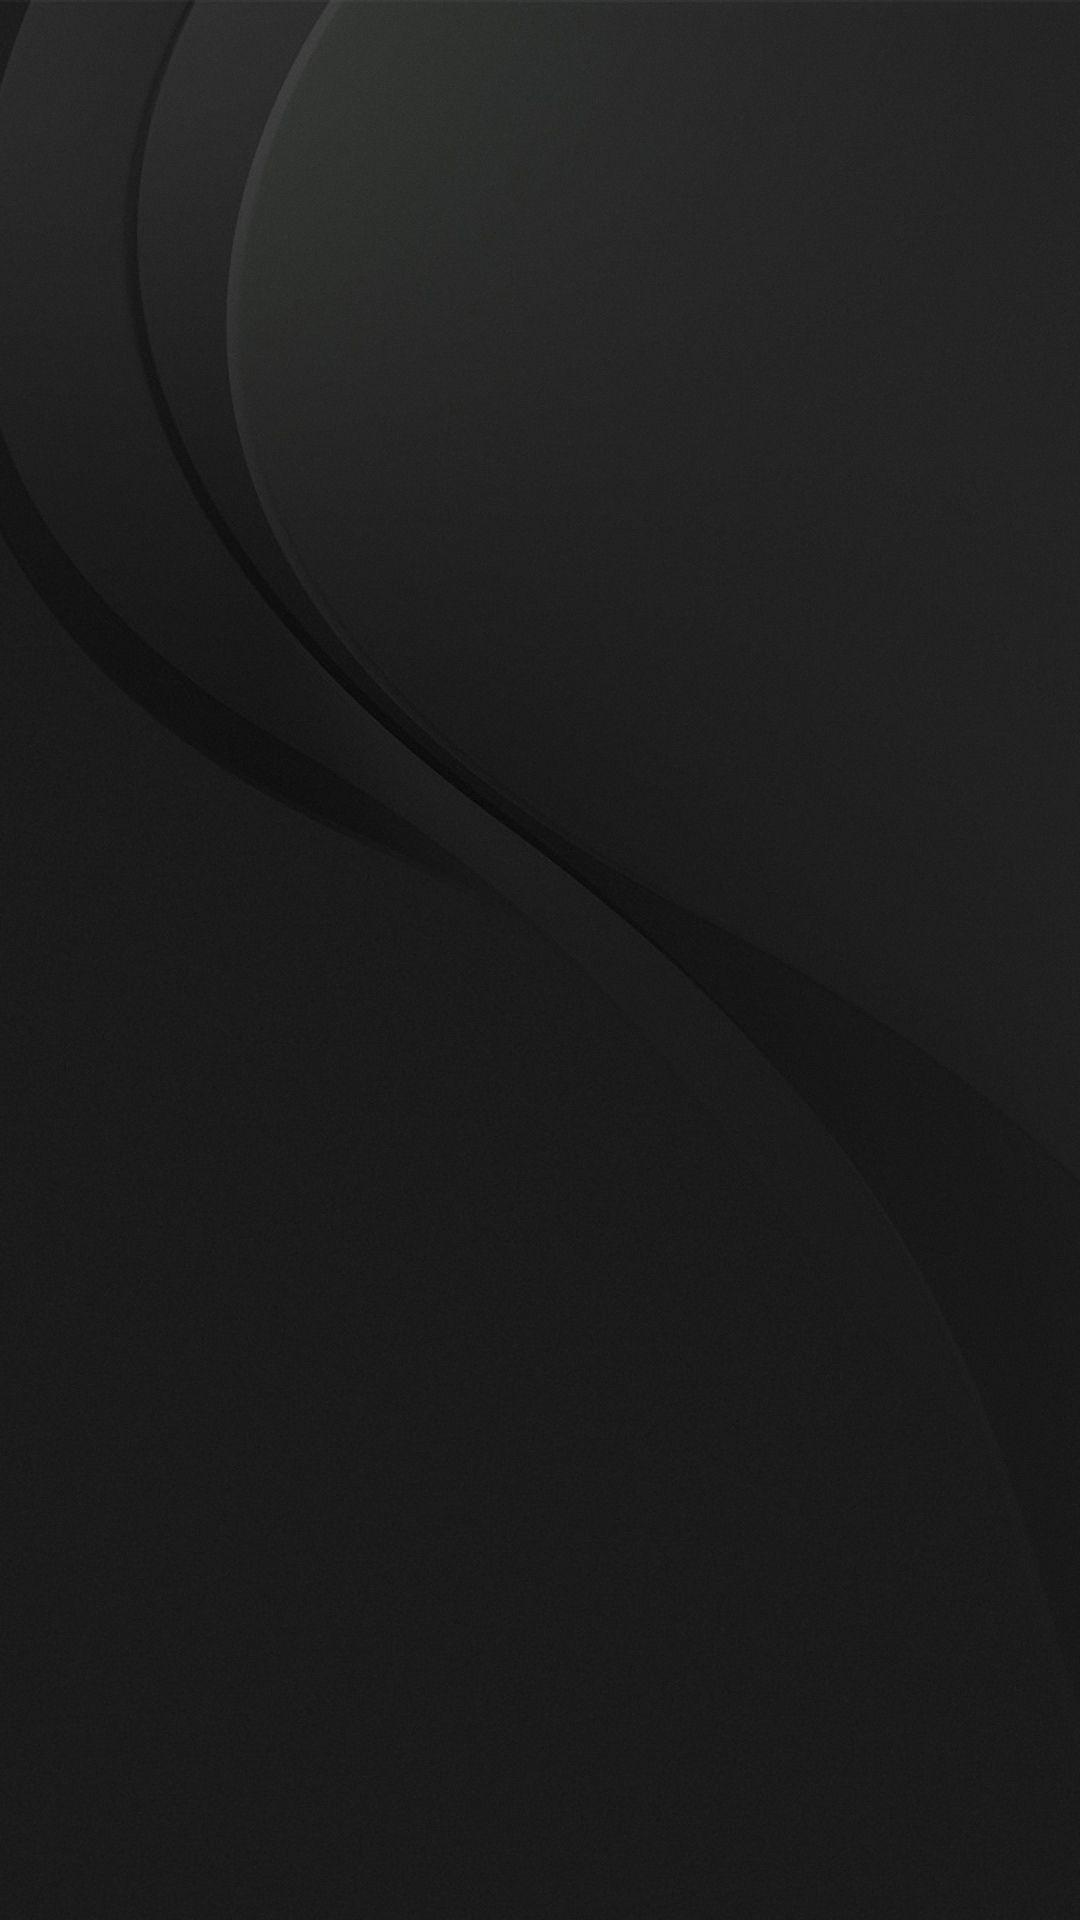 Black Leather Samsung Wallpapers